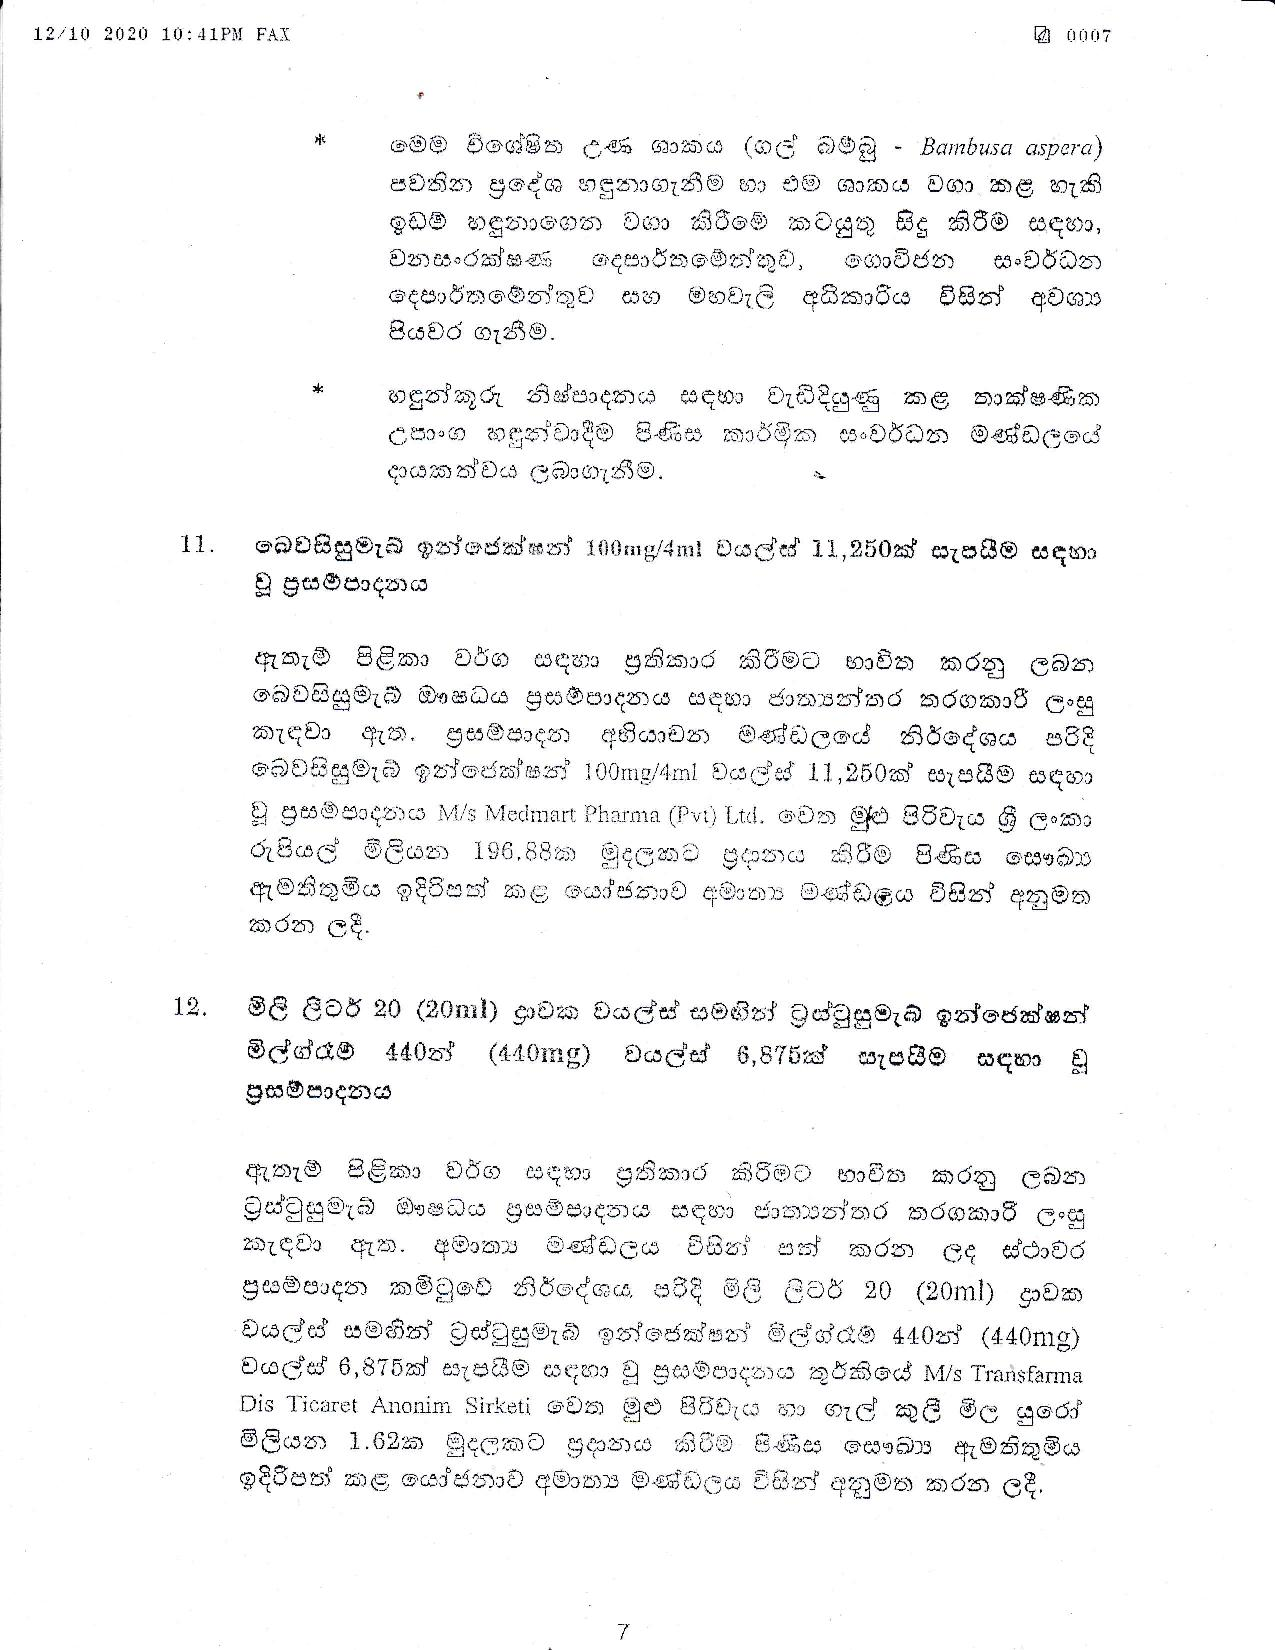 Cabinet Decision on 12.10.2020 page 007